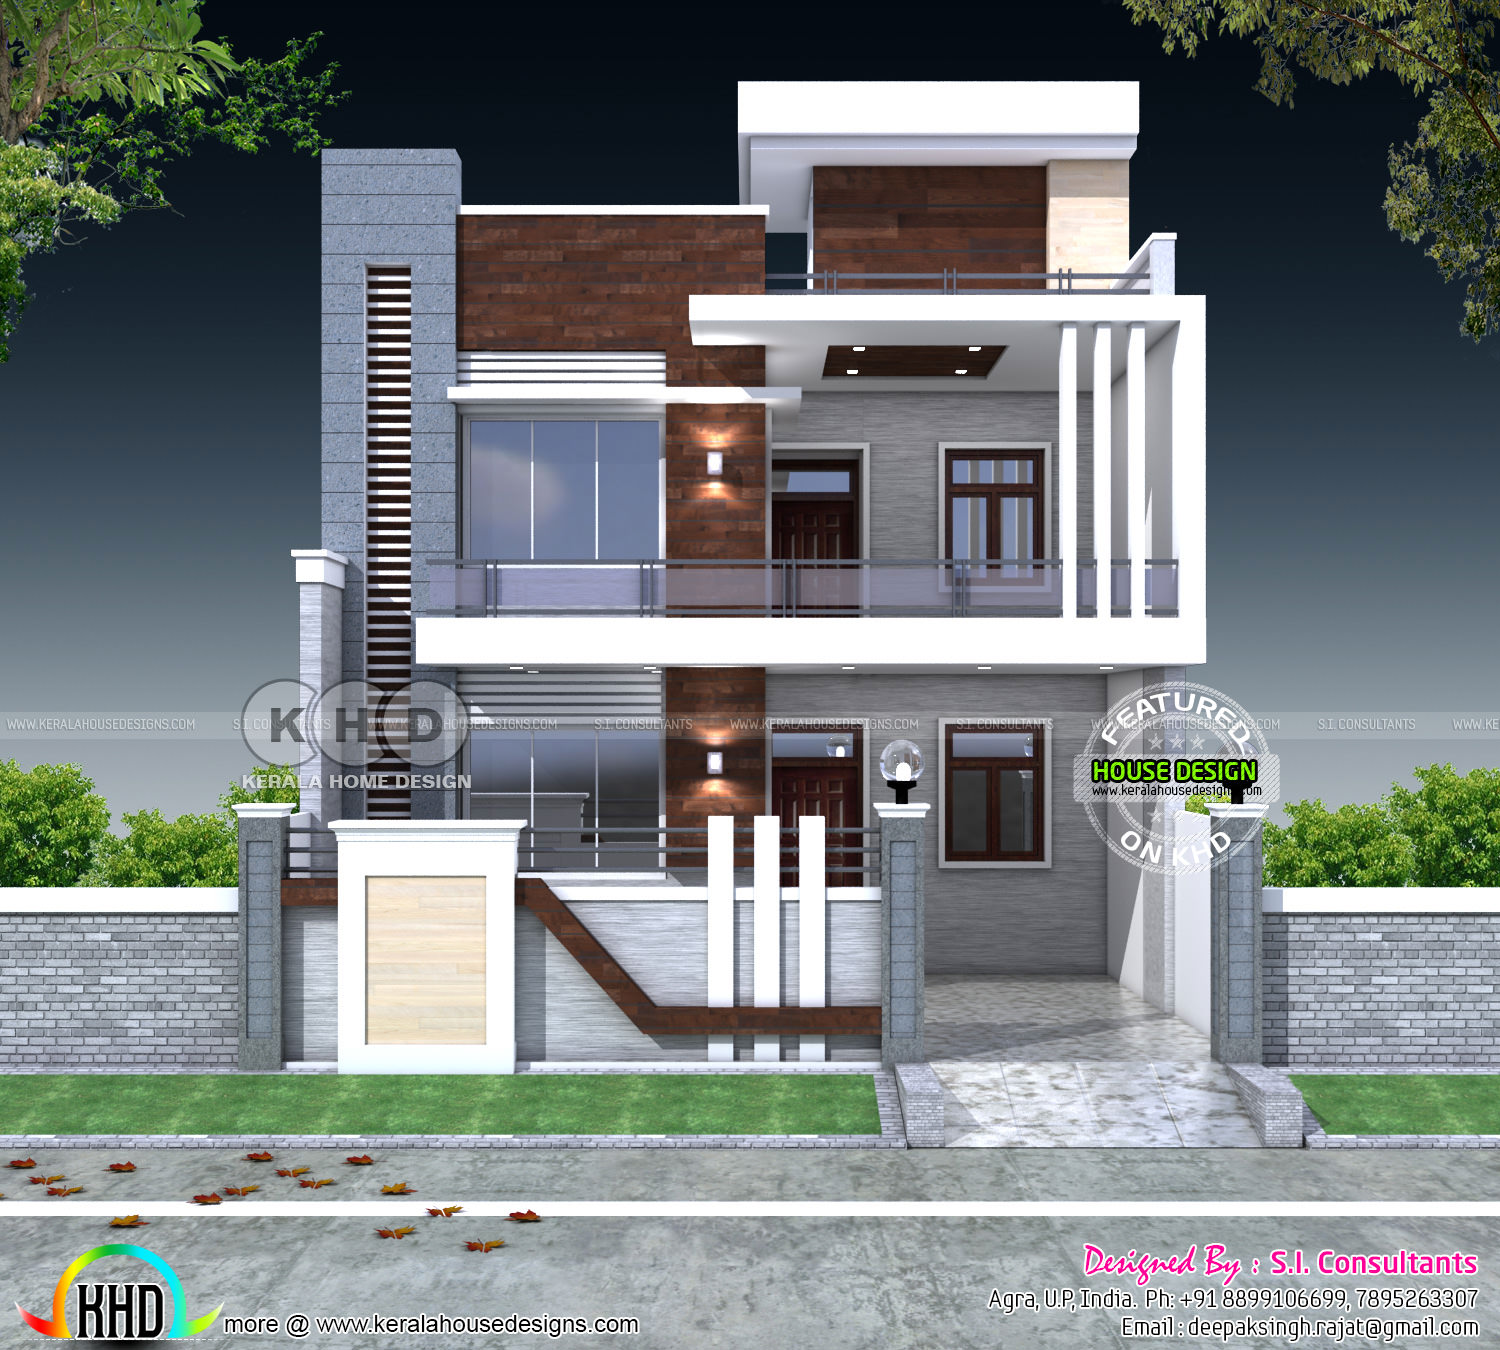 5 bedroom flat roof contemporary India home | Kerala home ...